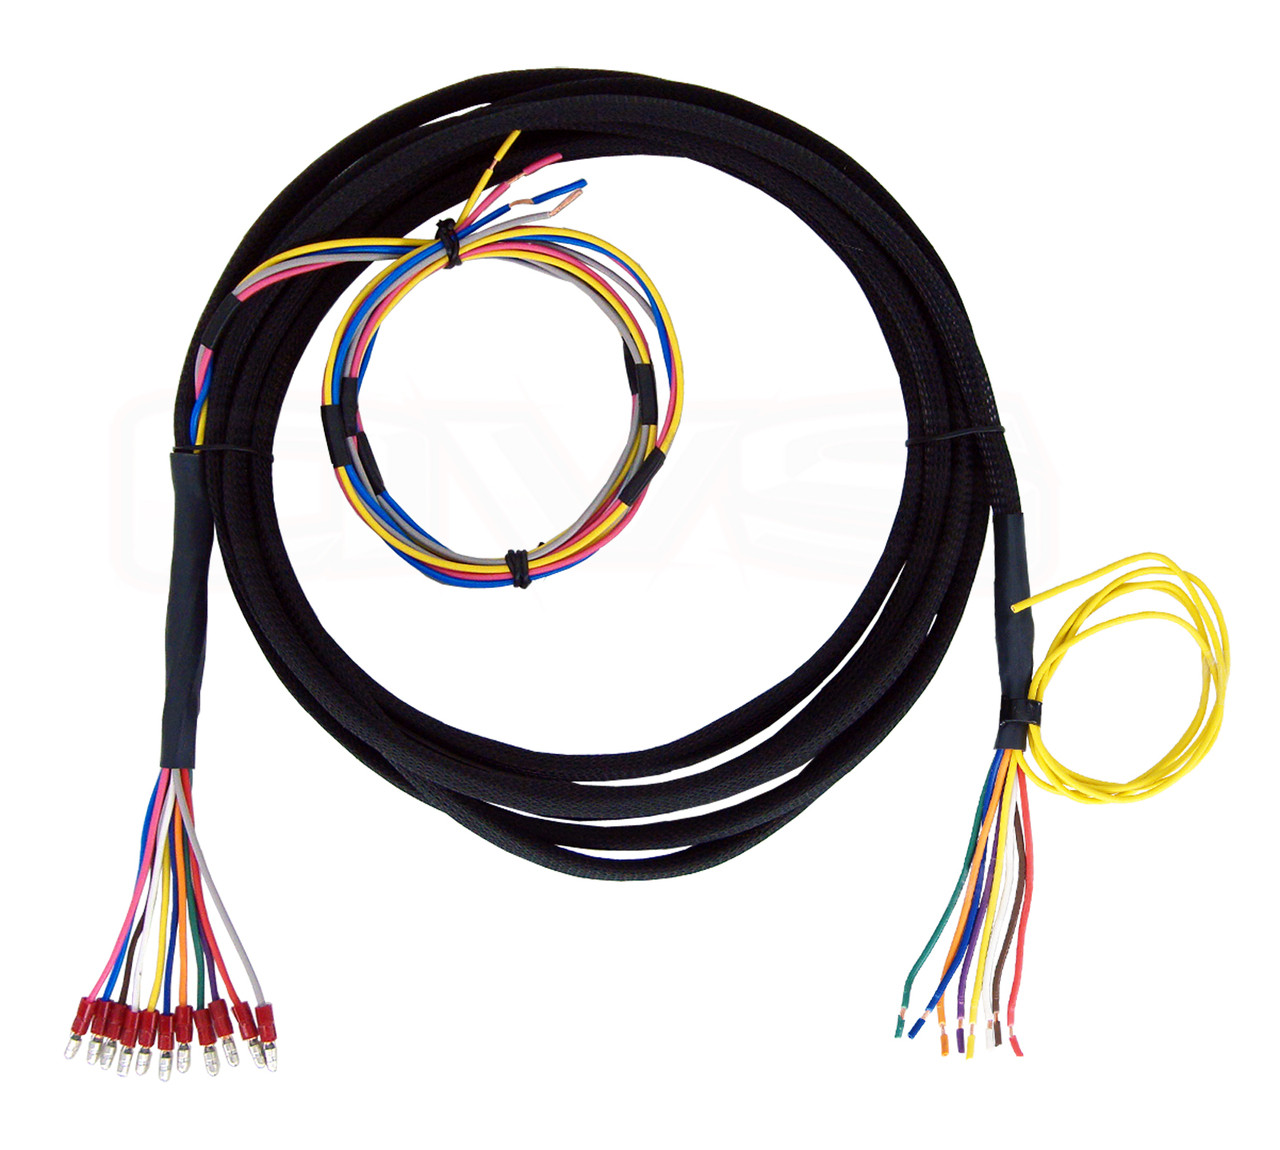 hight resolution of avs valve wiring harness 10 15 20 universal to avs 7 switch rh avsontheweb com 7 wire trailer wiring harness 4 plug wiring harness diagram